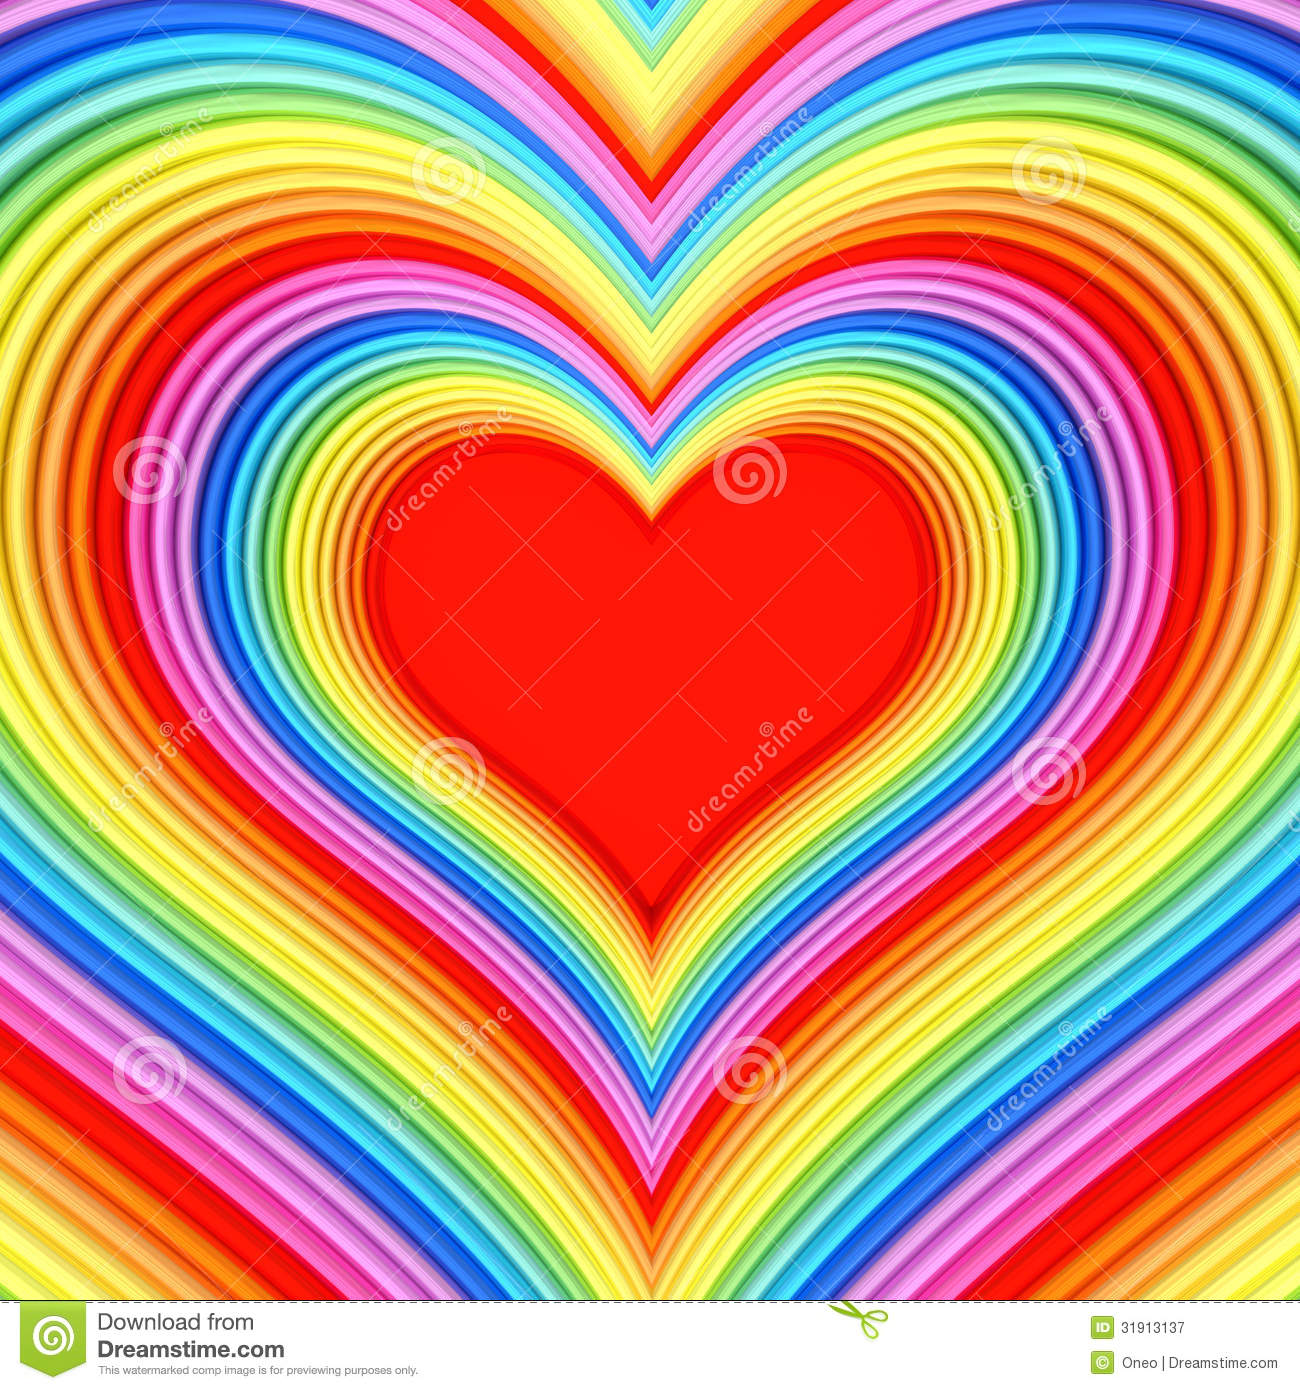 Colorful Glossy Heart Shape With Red Center Royalty Free